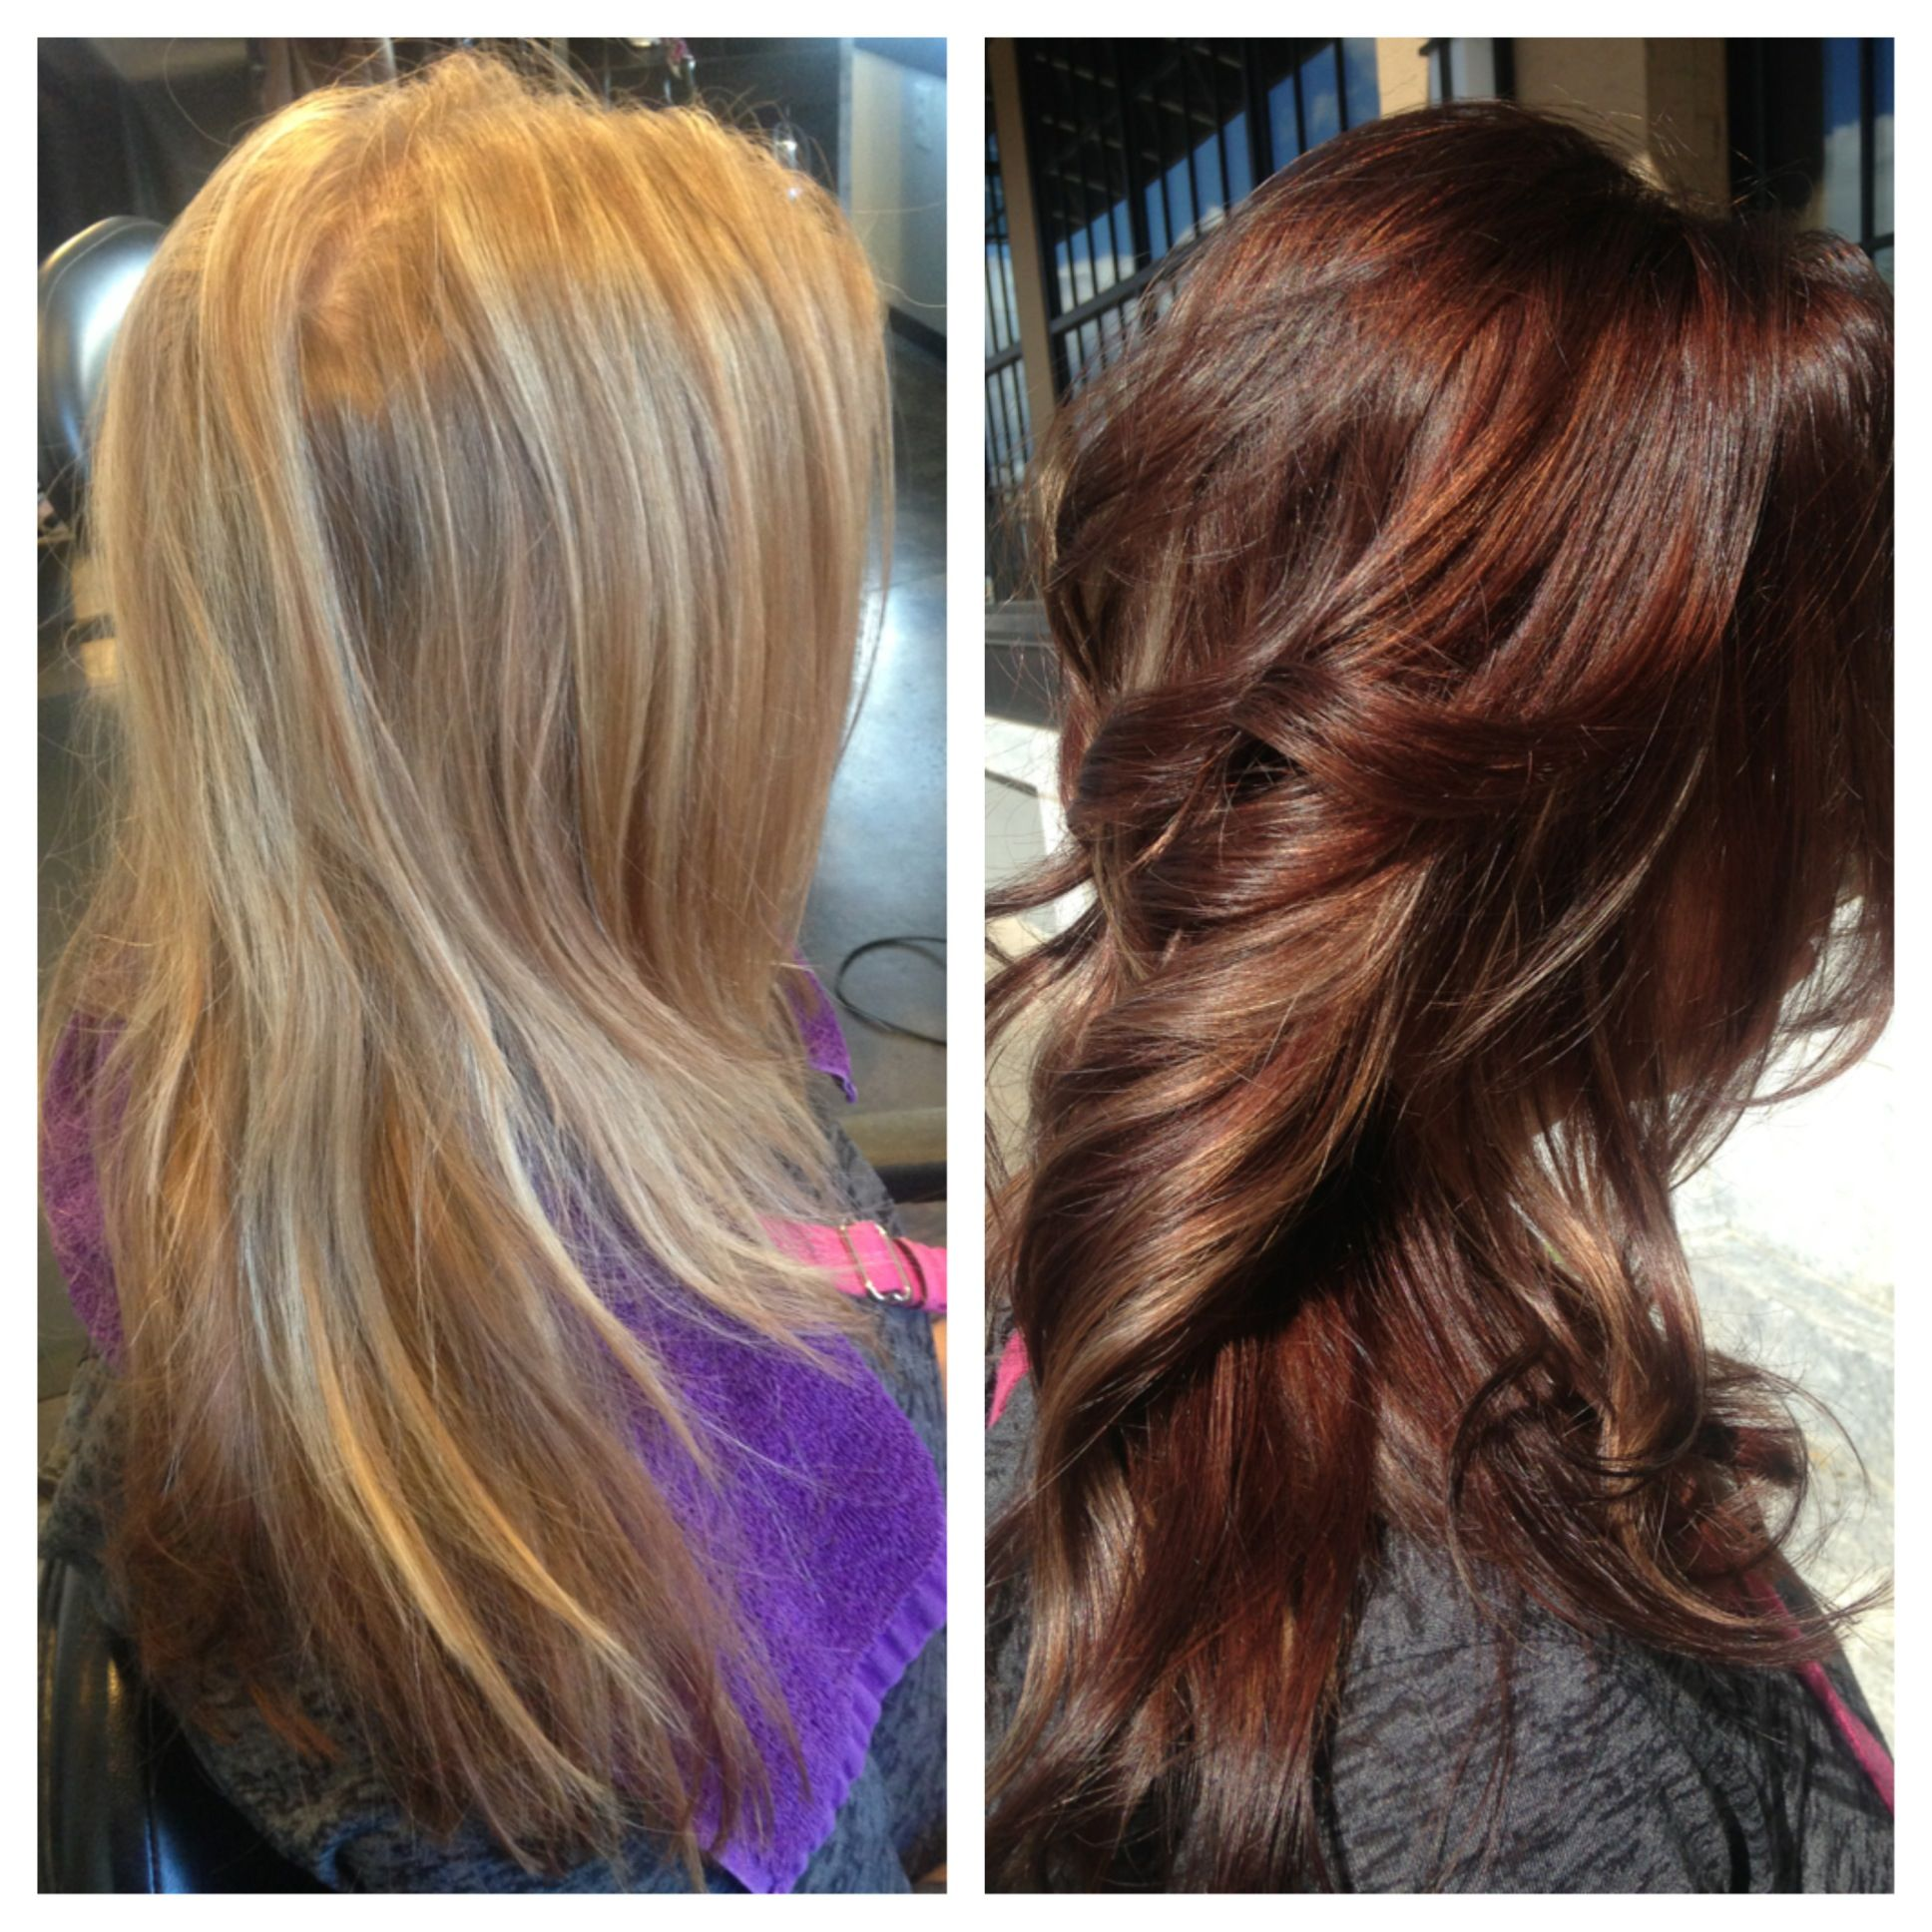 Loreal hair color chart 2016 - Beautiful Blonde To Auburn Hair Color For Fall 2016